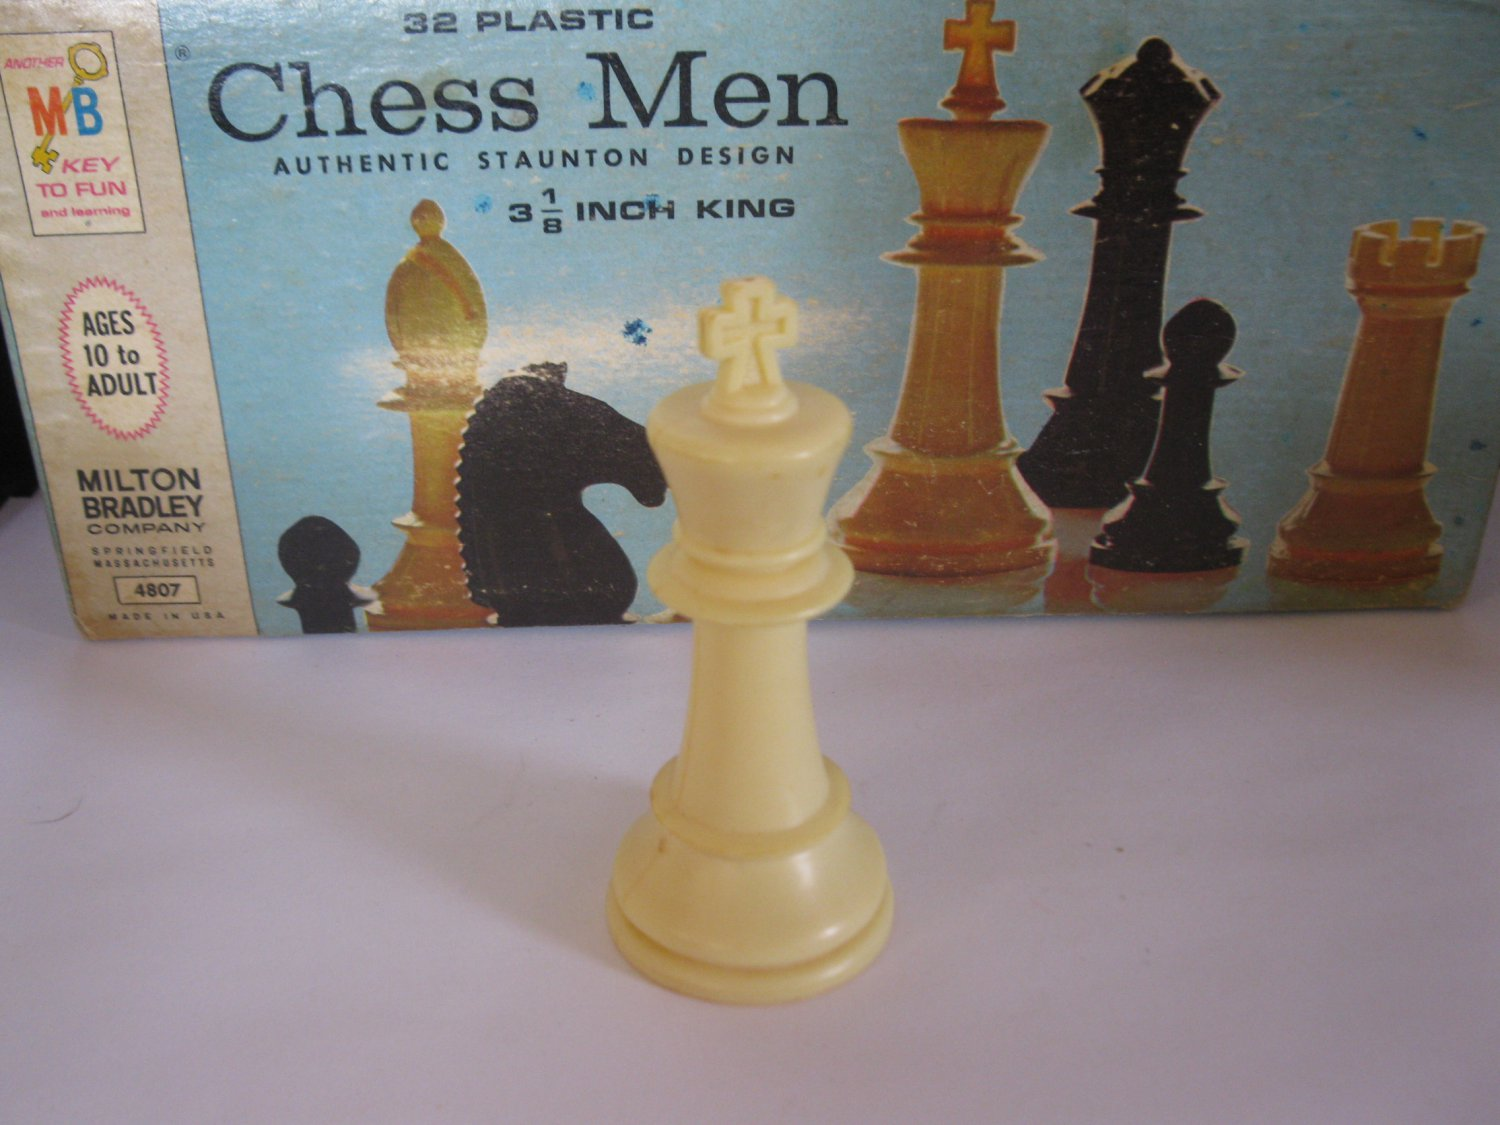 1969 Chess Men Board Game Piece: Authentic Stauton Design - White King